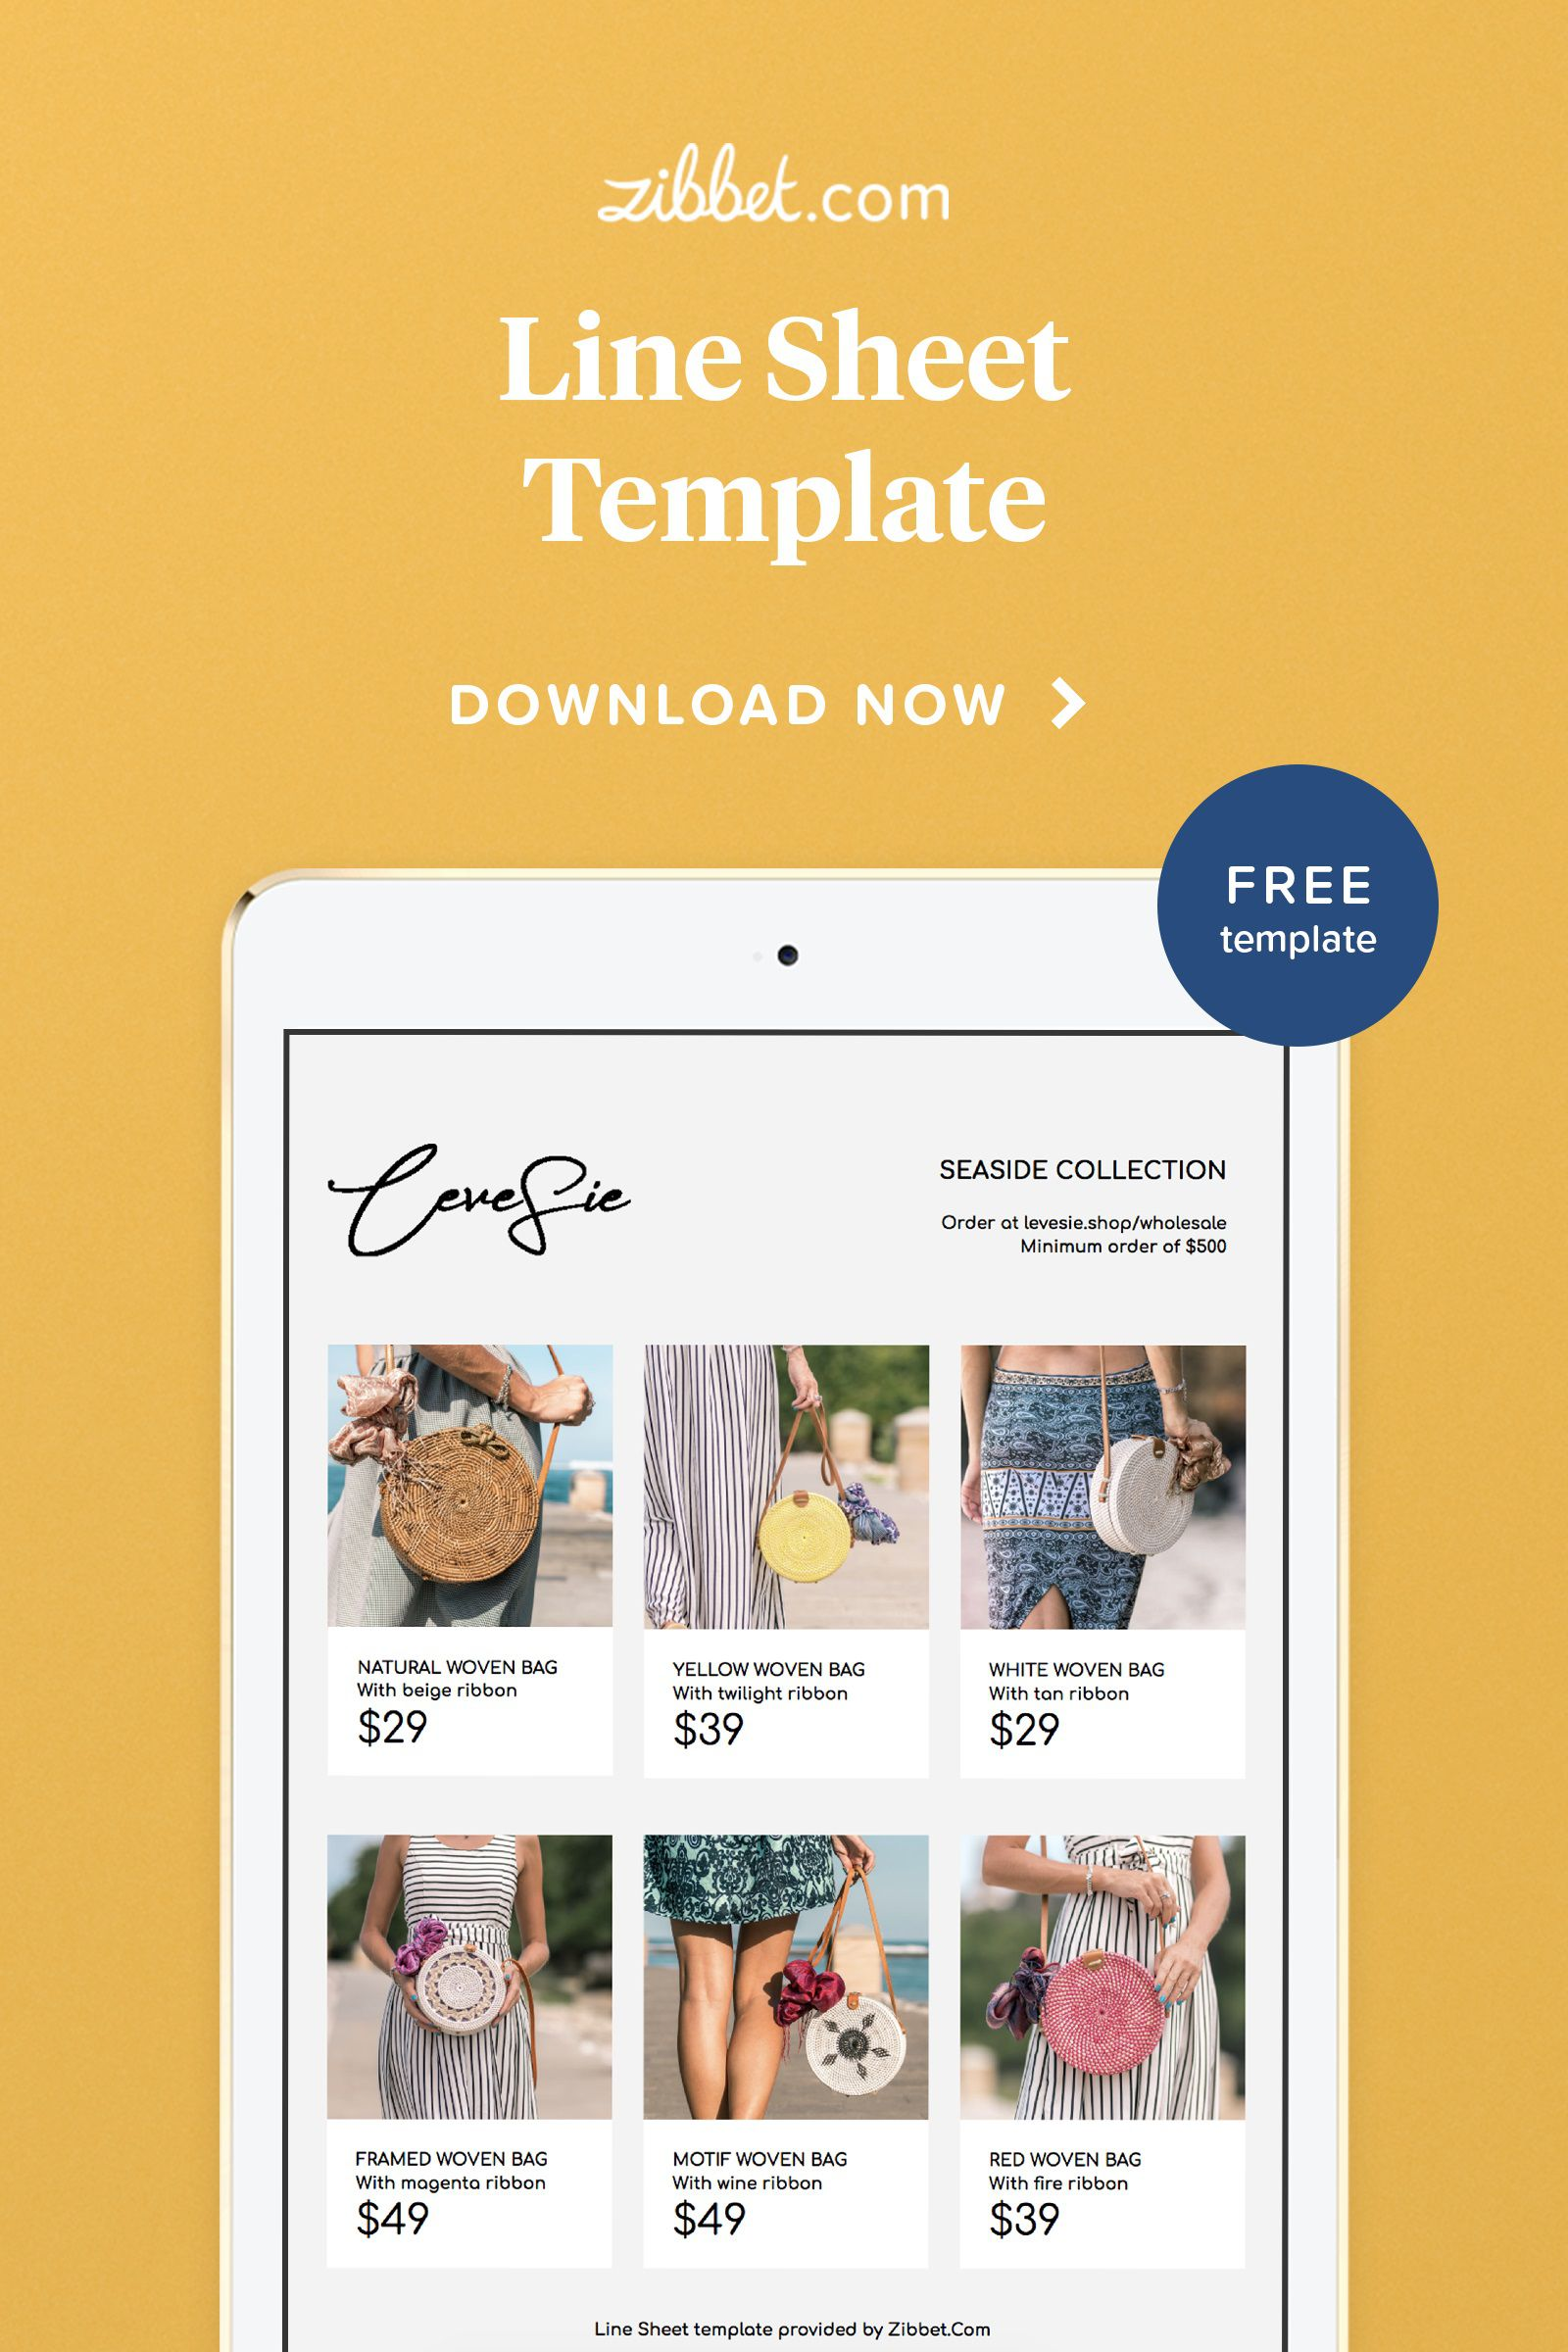 009 Staggering Wholesale Line Sheet Template Image  Fashion Free ExcelFull